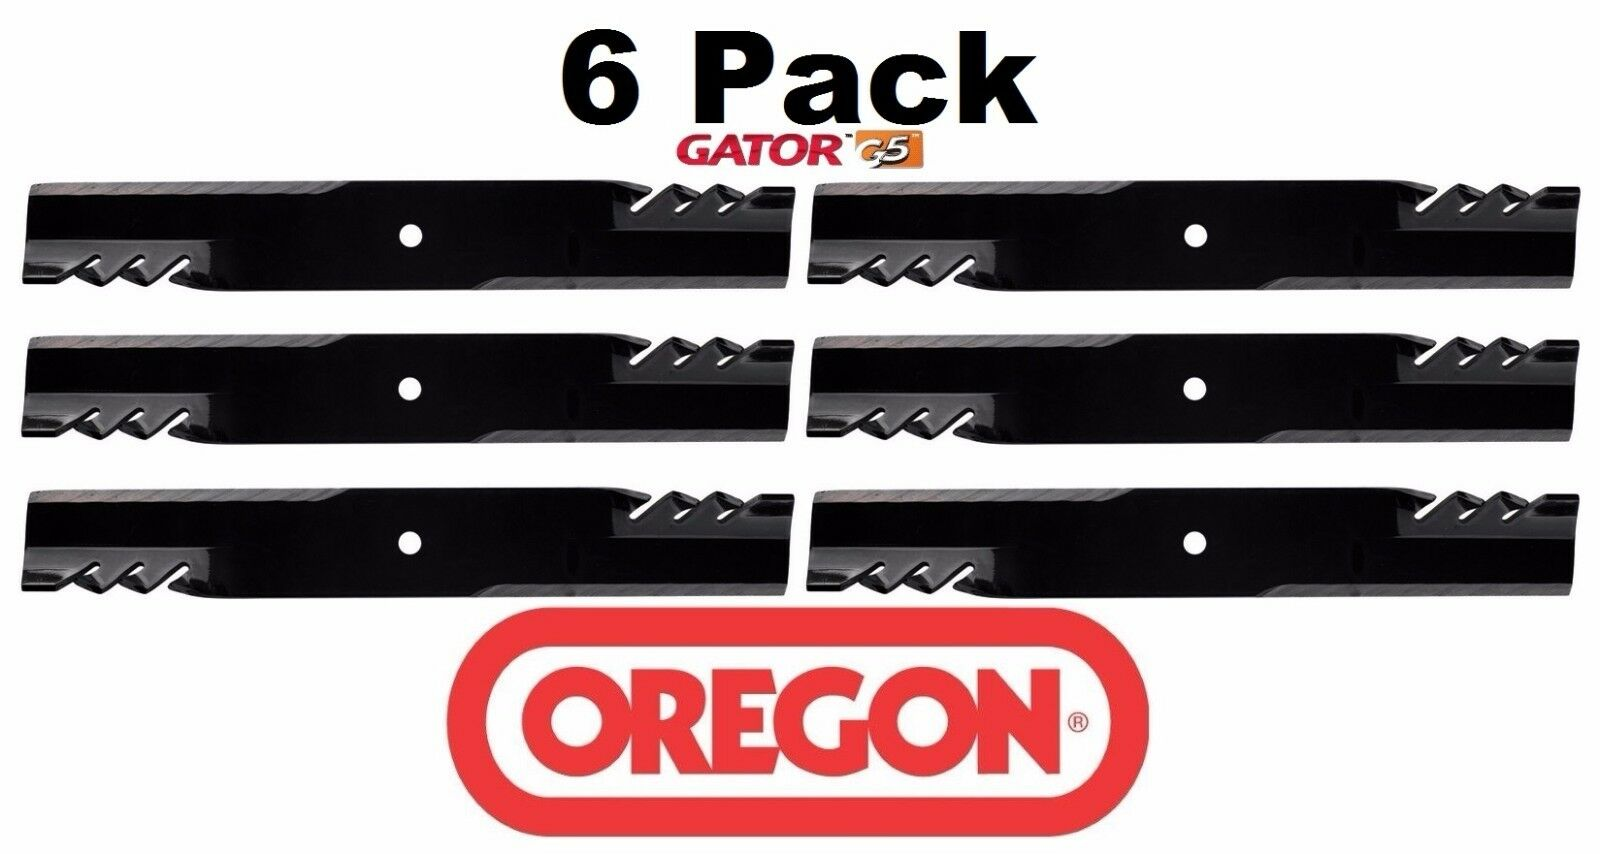 3 Pack Oregon 596-704 Mower Blade Gator G5 Fits Hustler 603848 603848X 603848Y